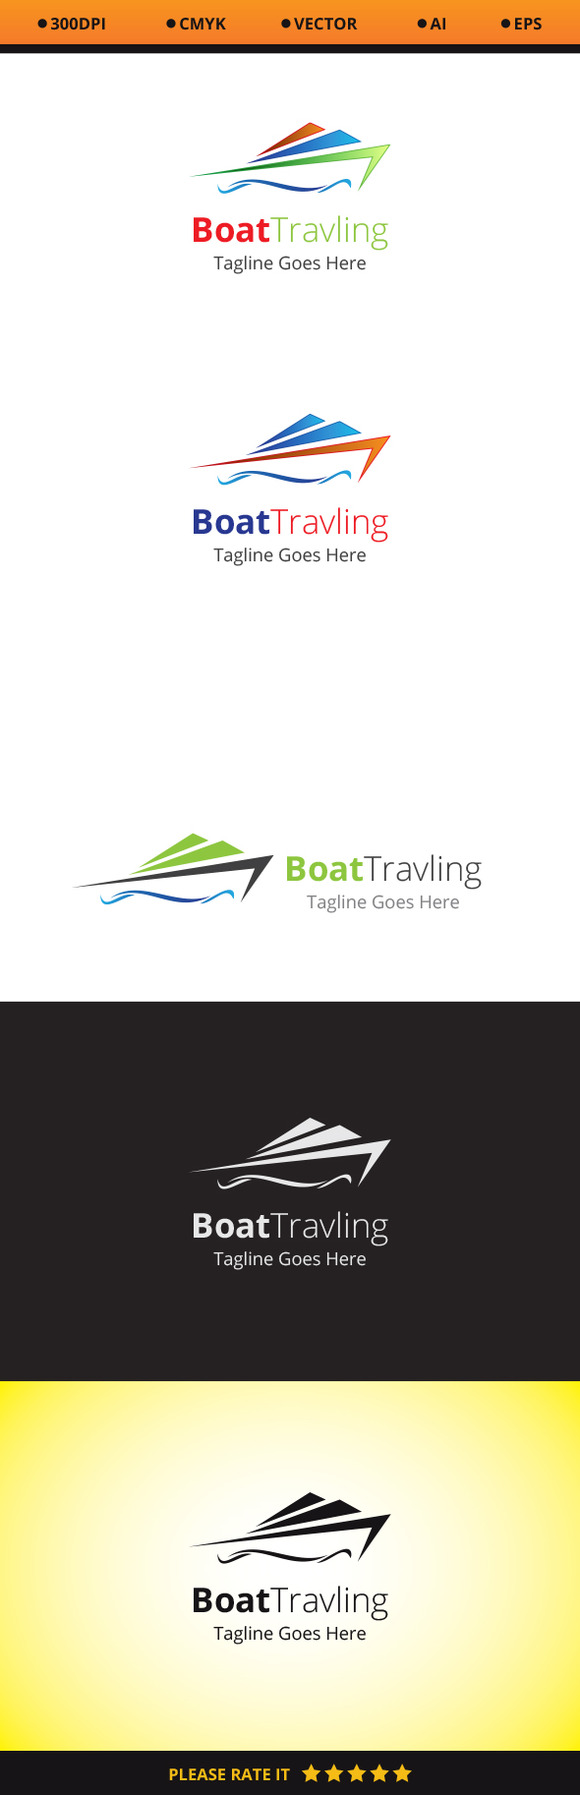 Boat Traveling